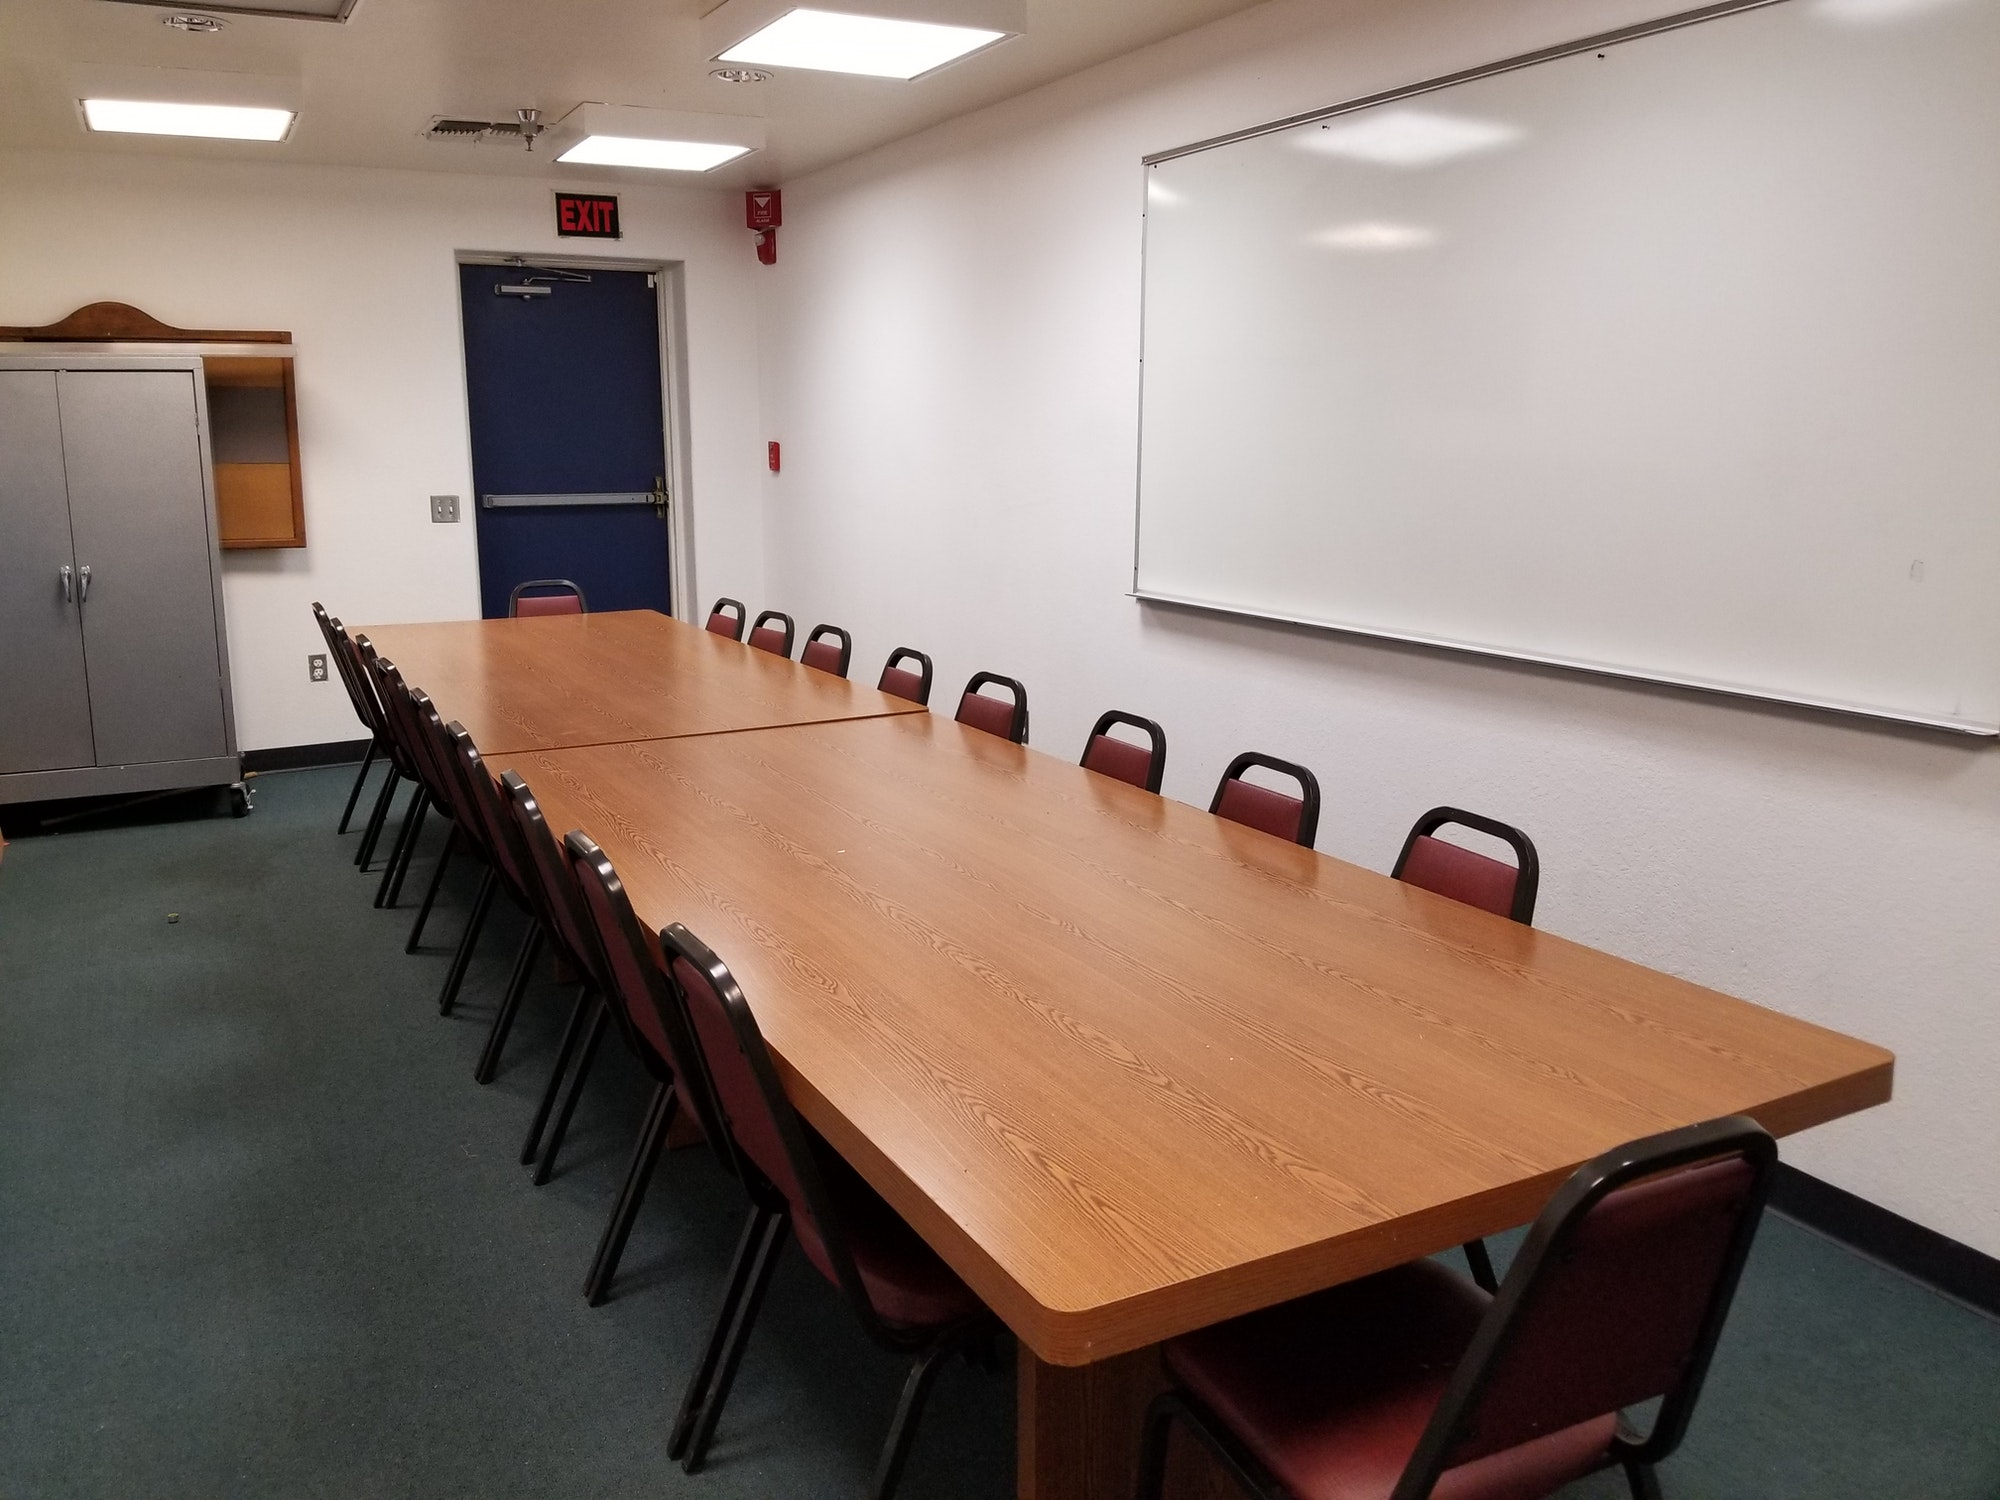 May contain: meeting room, room, conference room, indoors, furniture, and chair